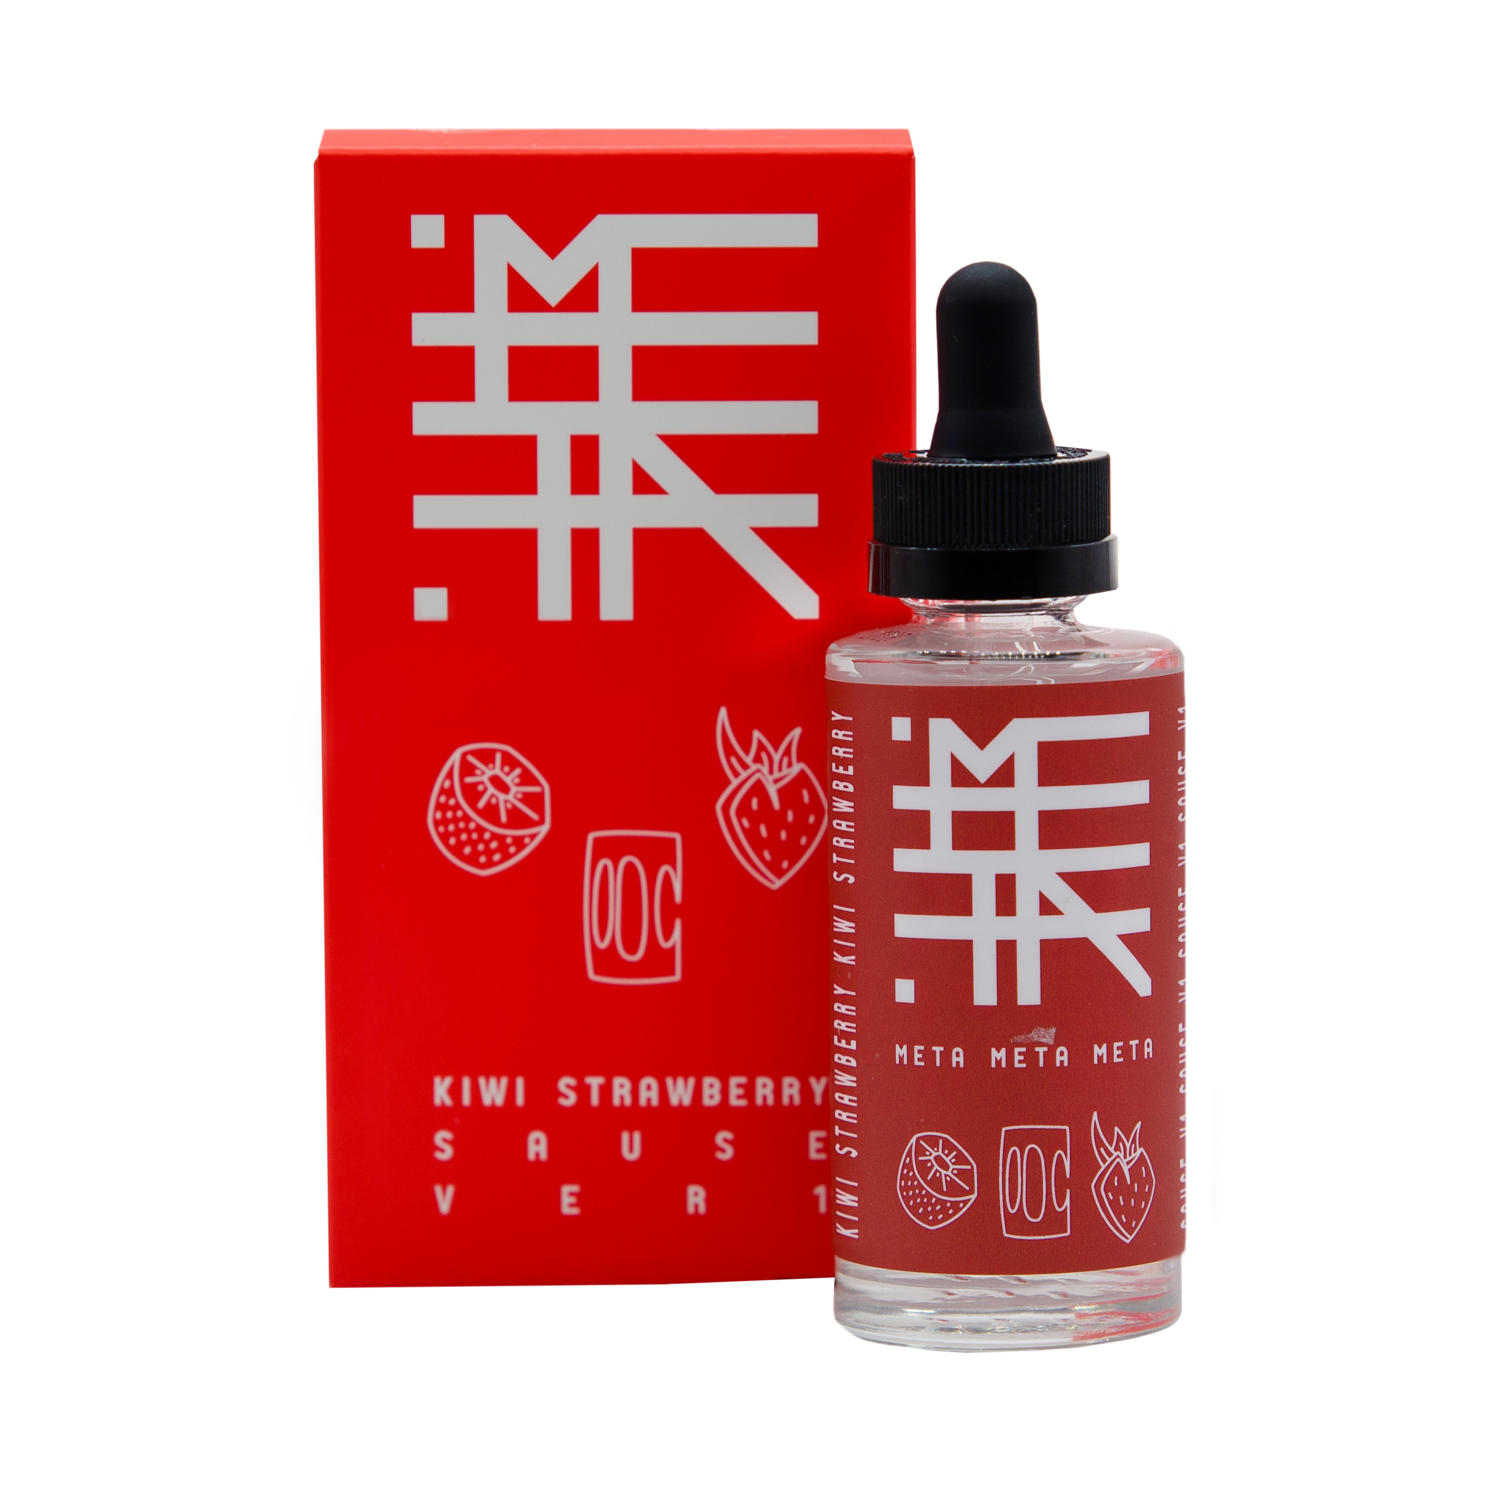 ЖИДКОСТЬ META BY DOCTOR GRIMES: KIWI STRAWBERRY SAUCE 60ML